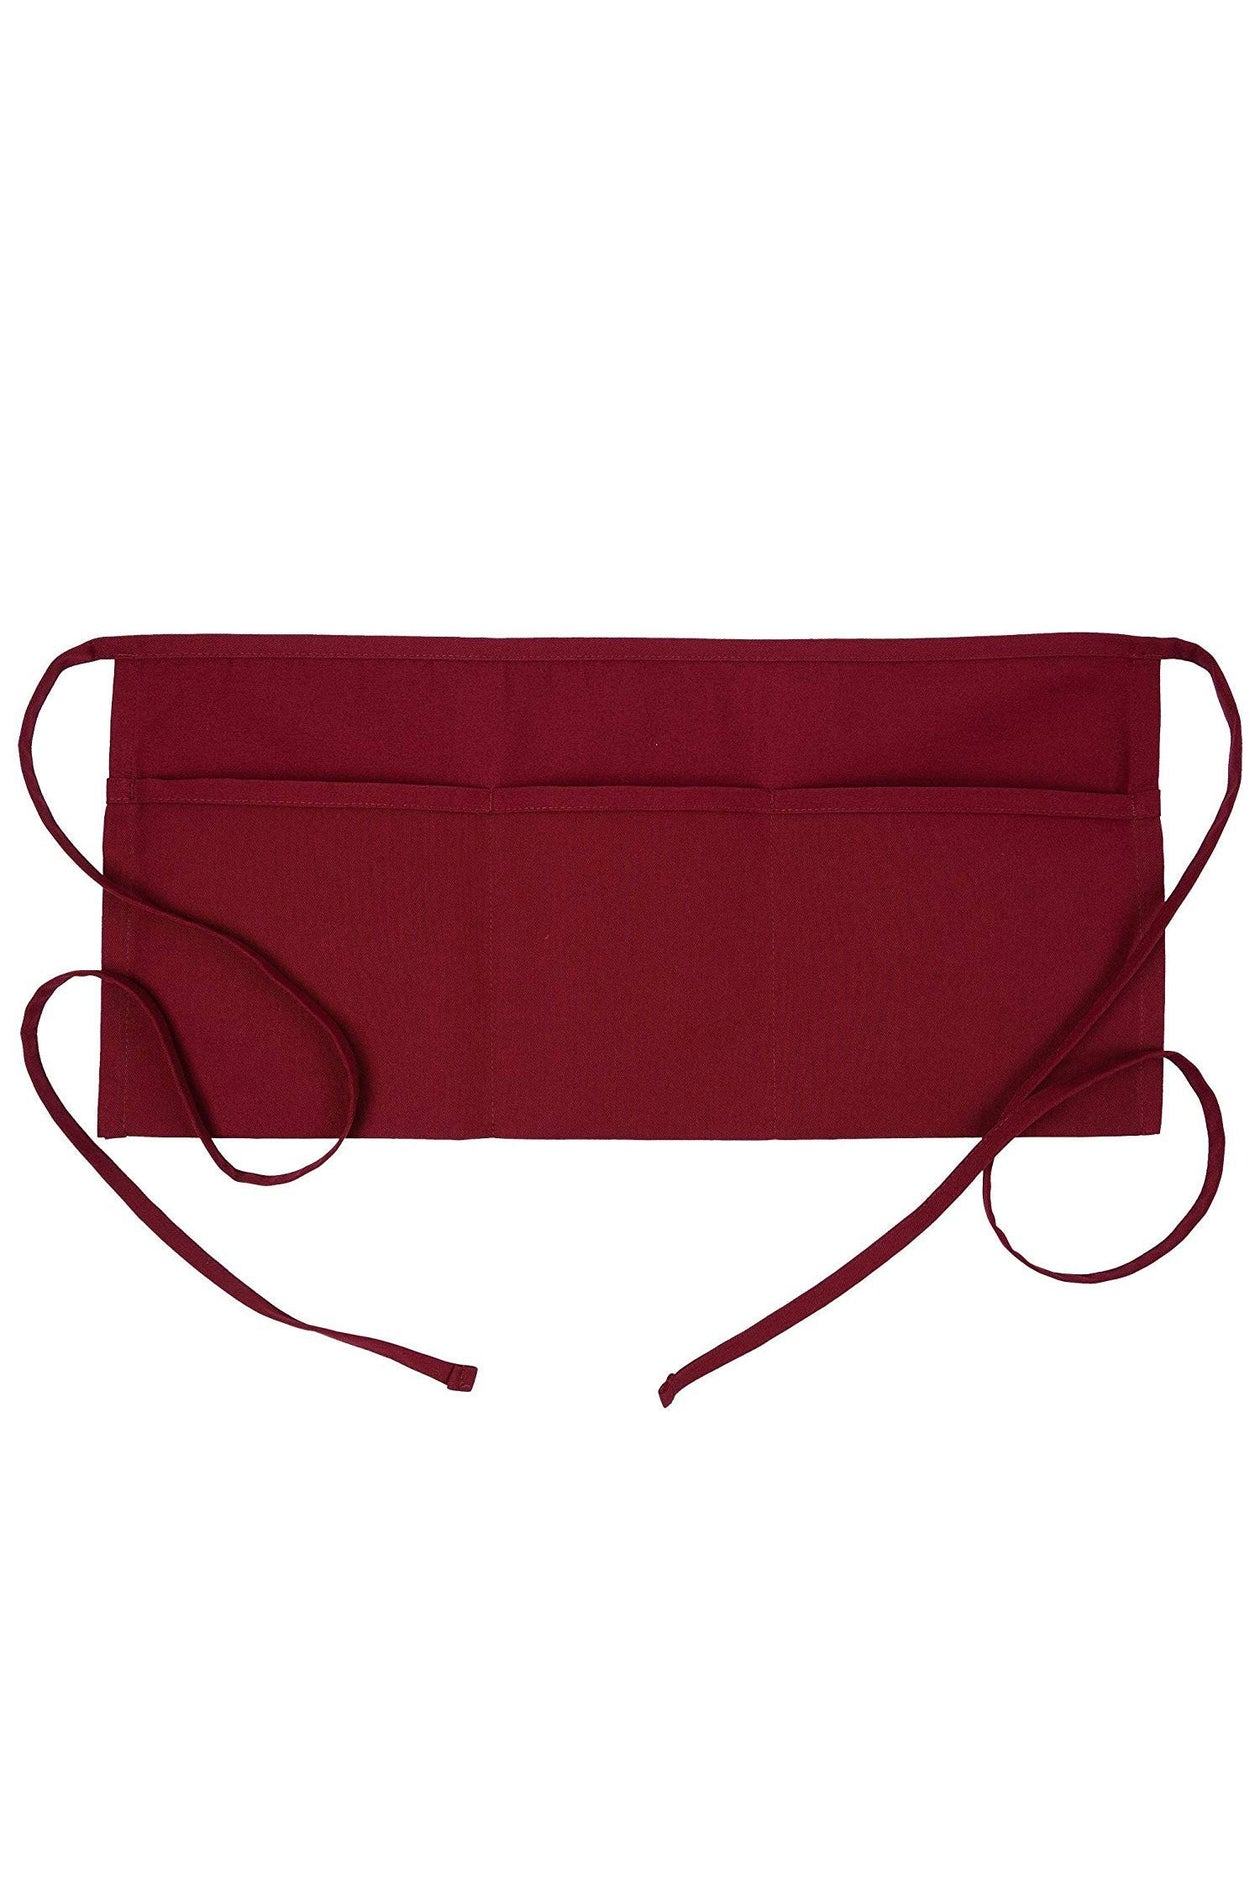 Burgundy Waist Apron (3 Pockets)